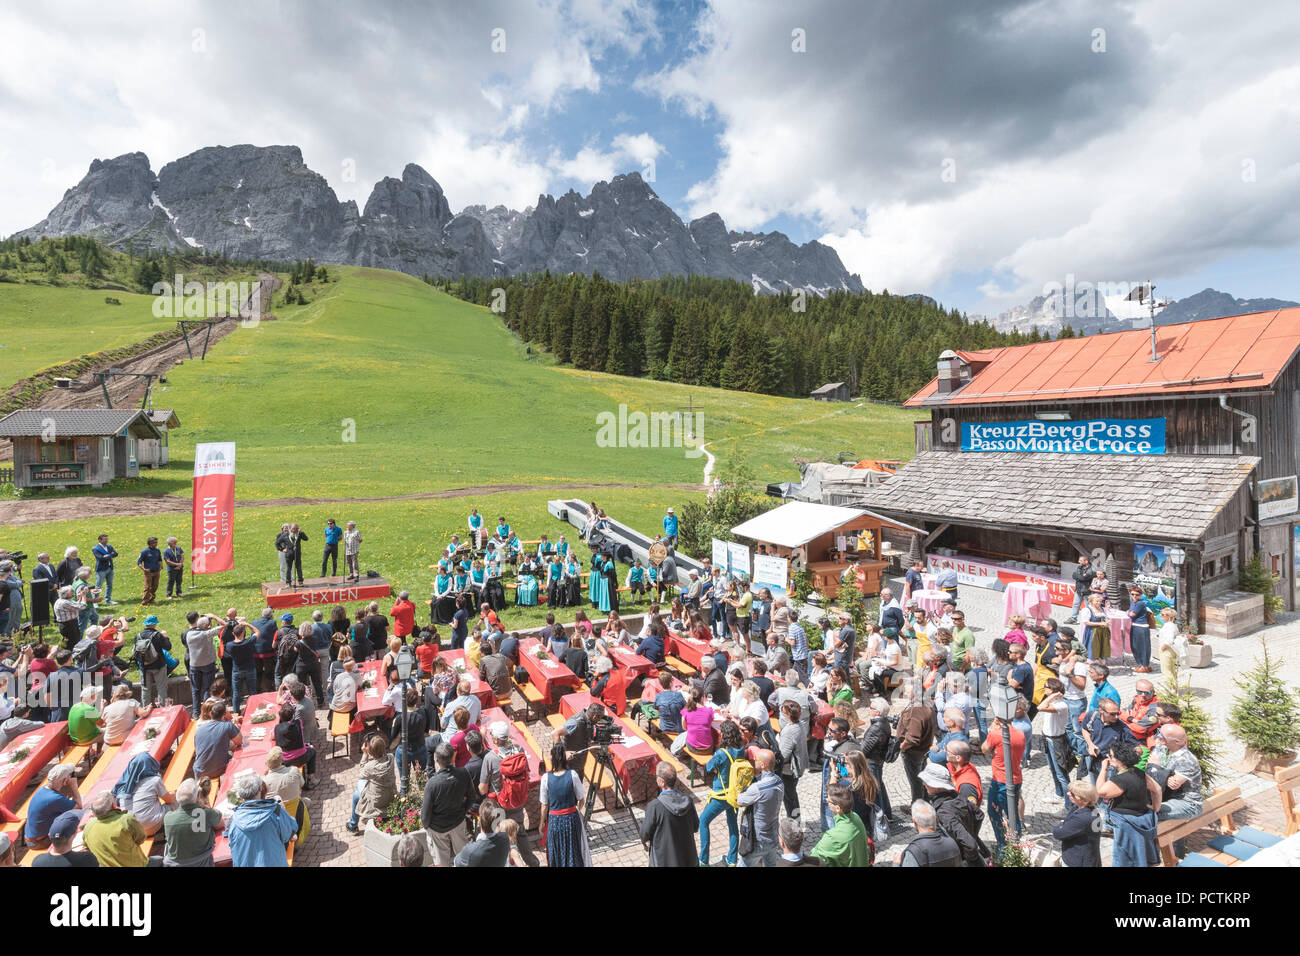 9 june 2018 - inauguration ceremony of dolomites without borders - dolomiten ohne grenzen at the Kreuz Berg pass, Sexten, South Tyrol - Stock Image